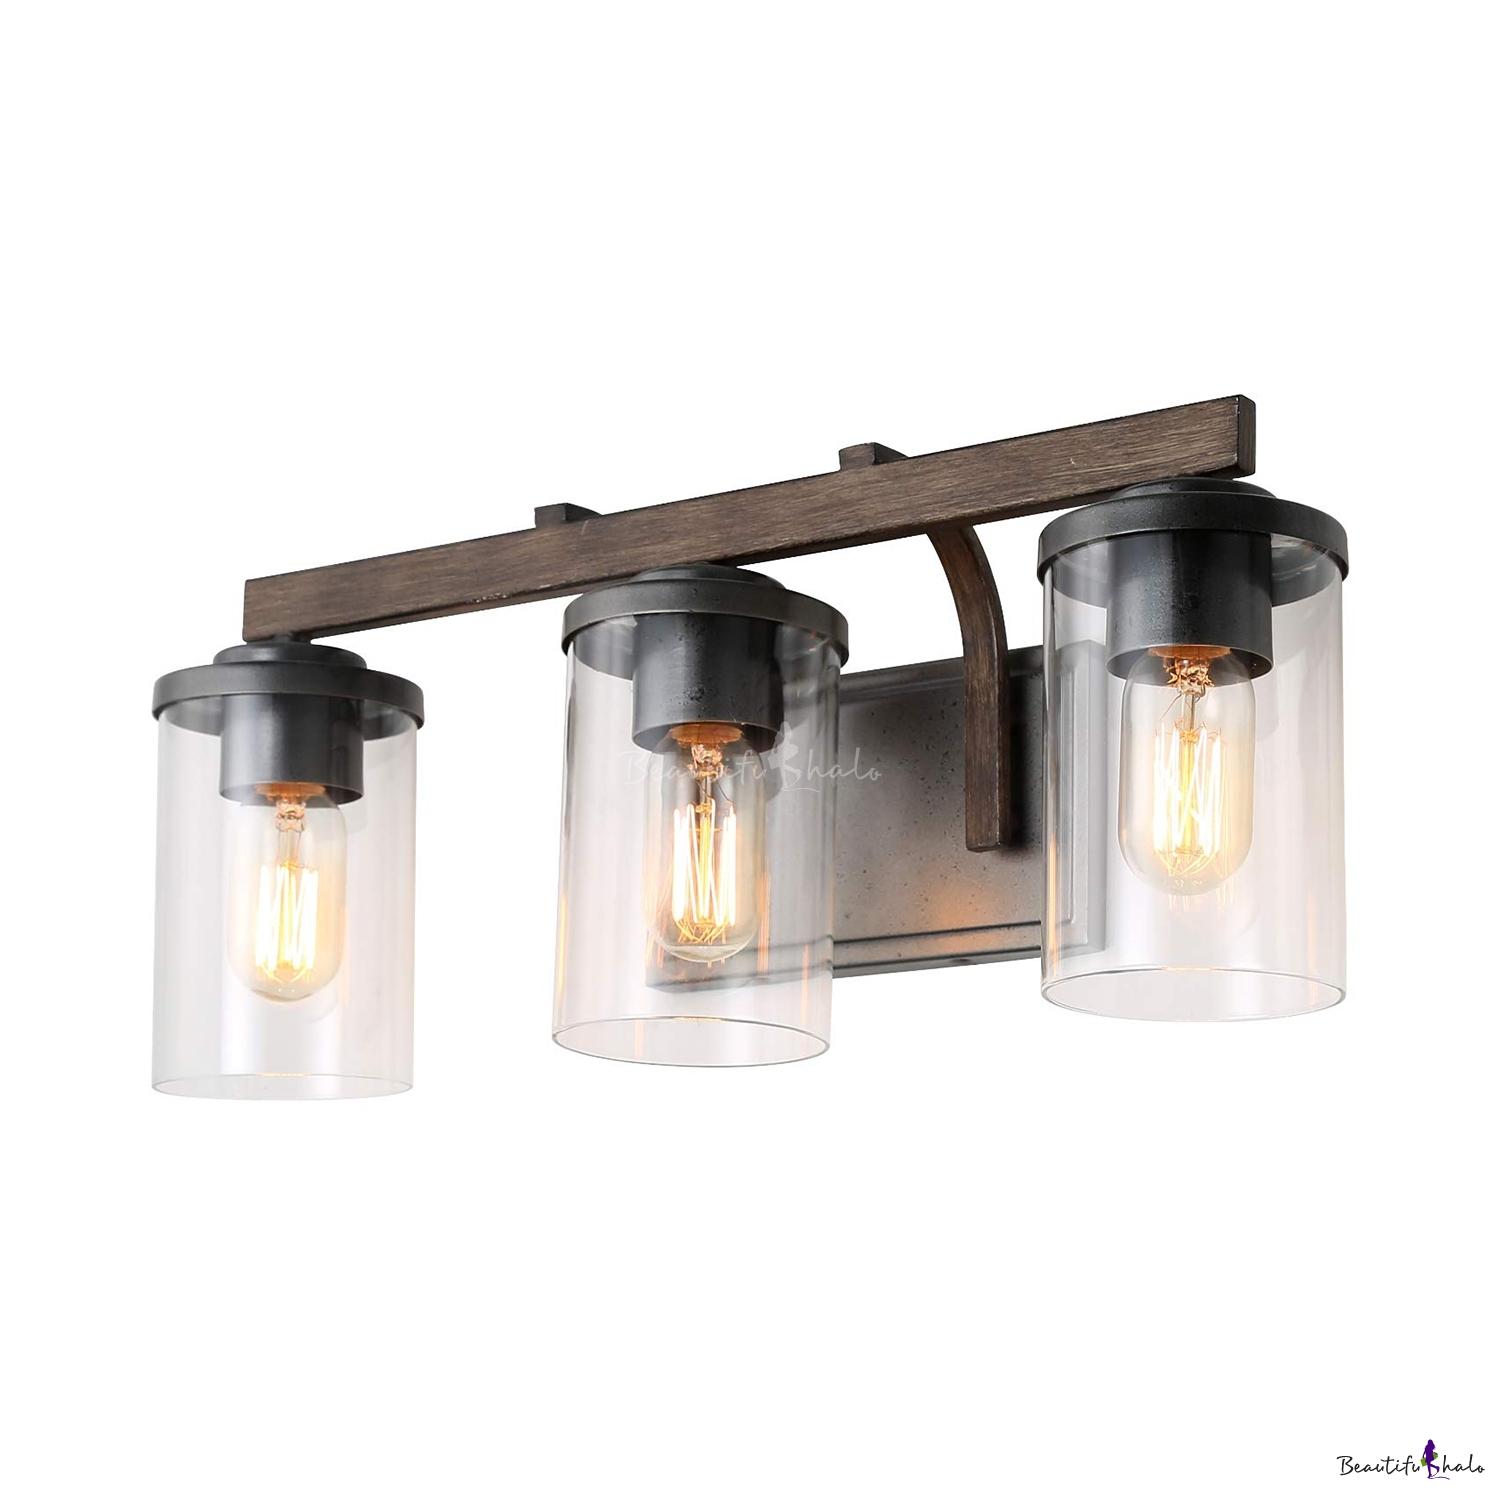 Sensational Industrial Sconce Wall Light With Cylinder Shade 3 Lights Clear Glass Wall Light For Bathroom Mirror Download Free Architecture Designs Viewormadebymaigaardcom